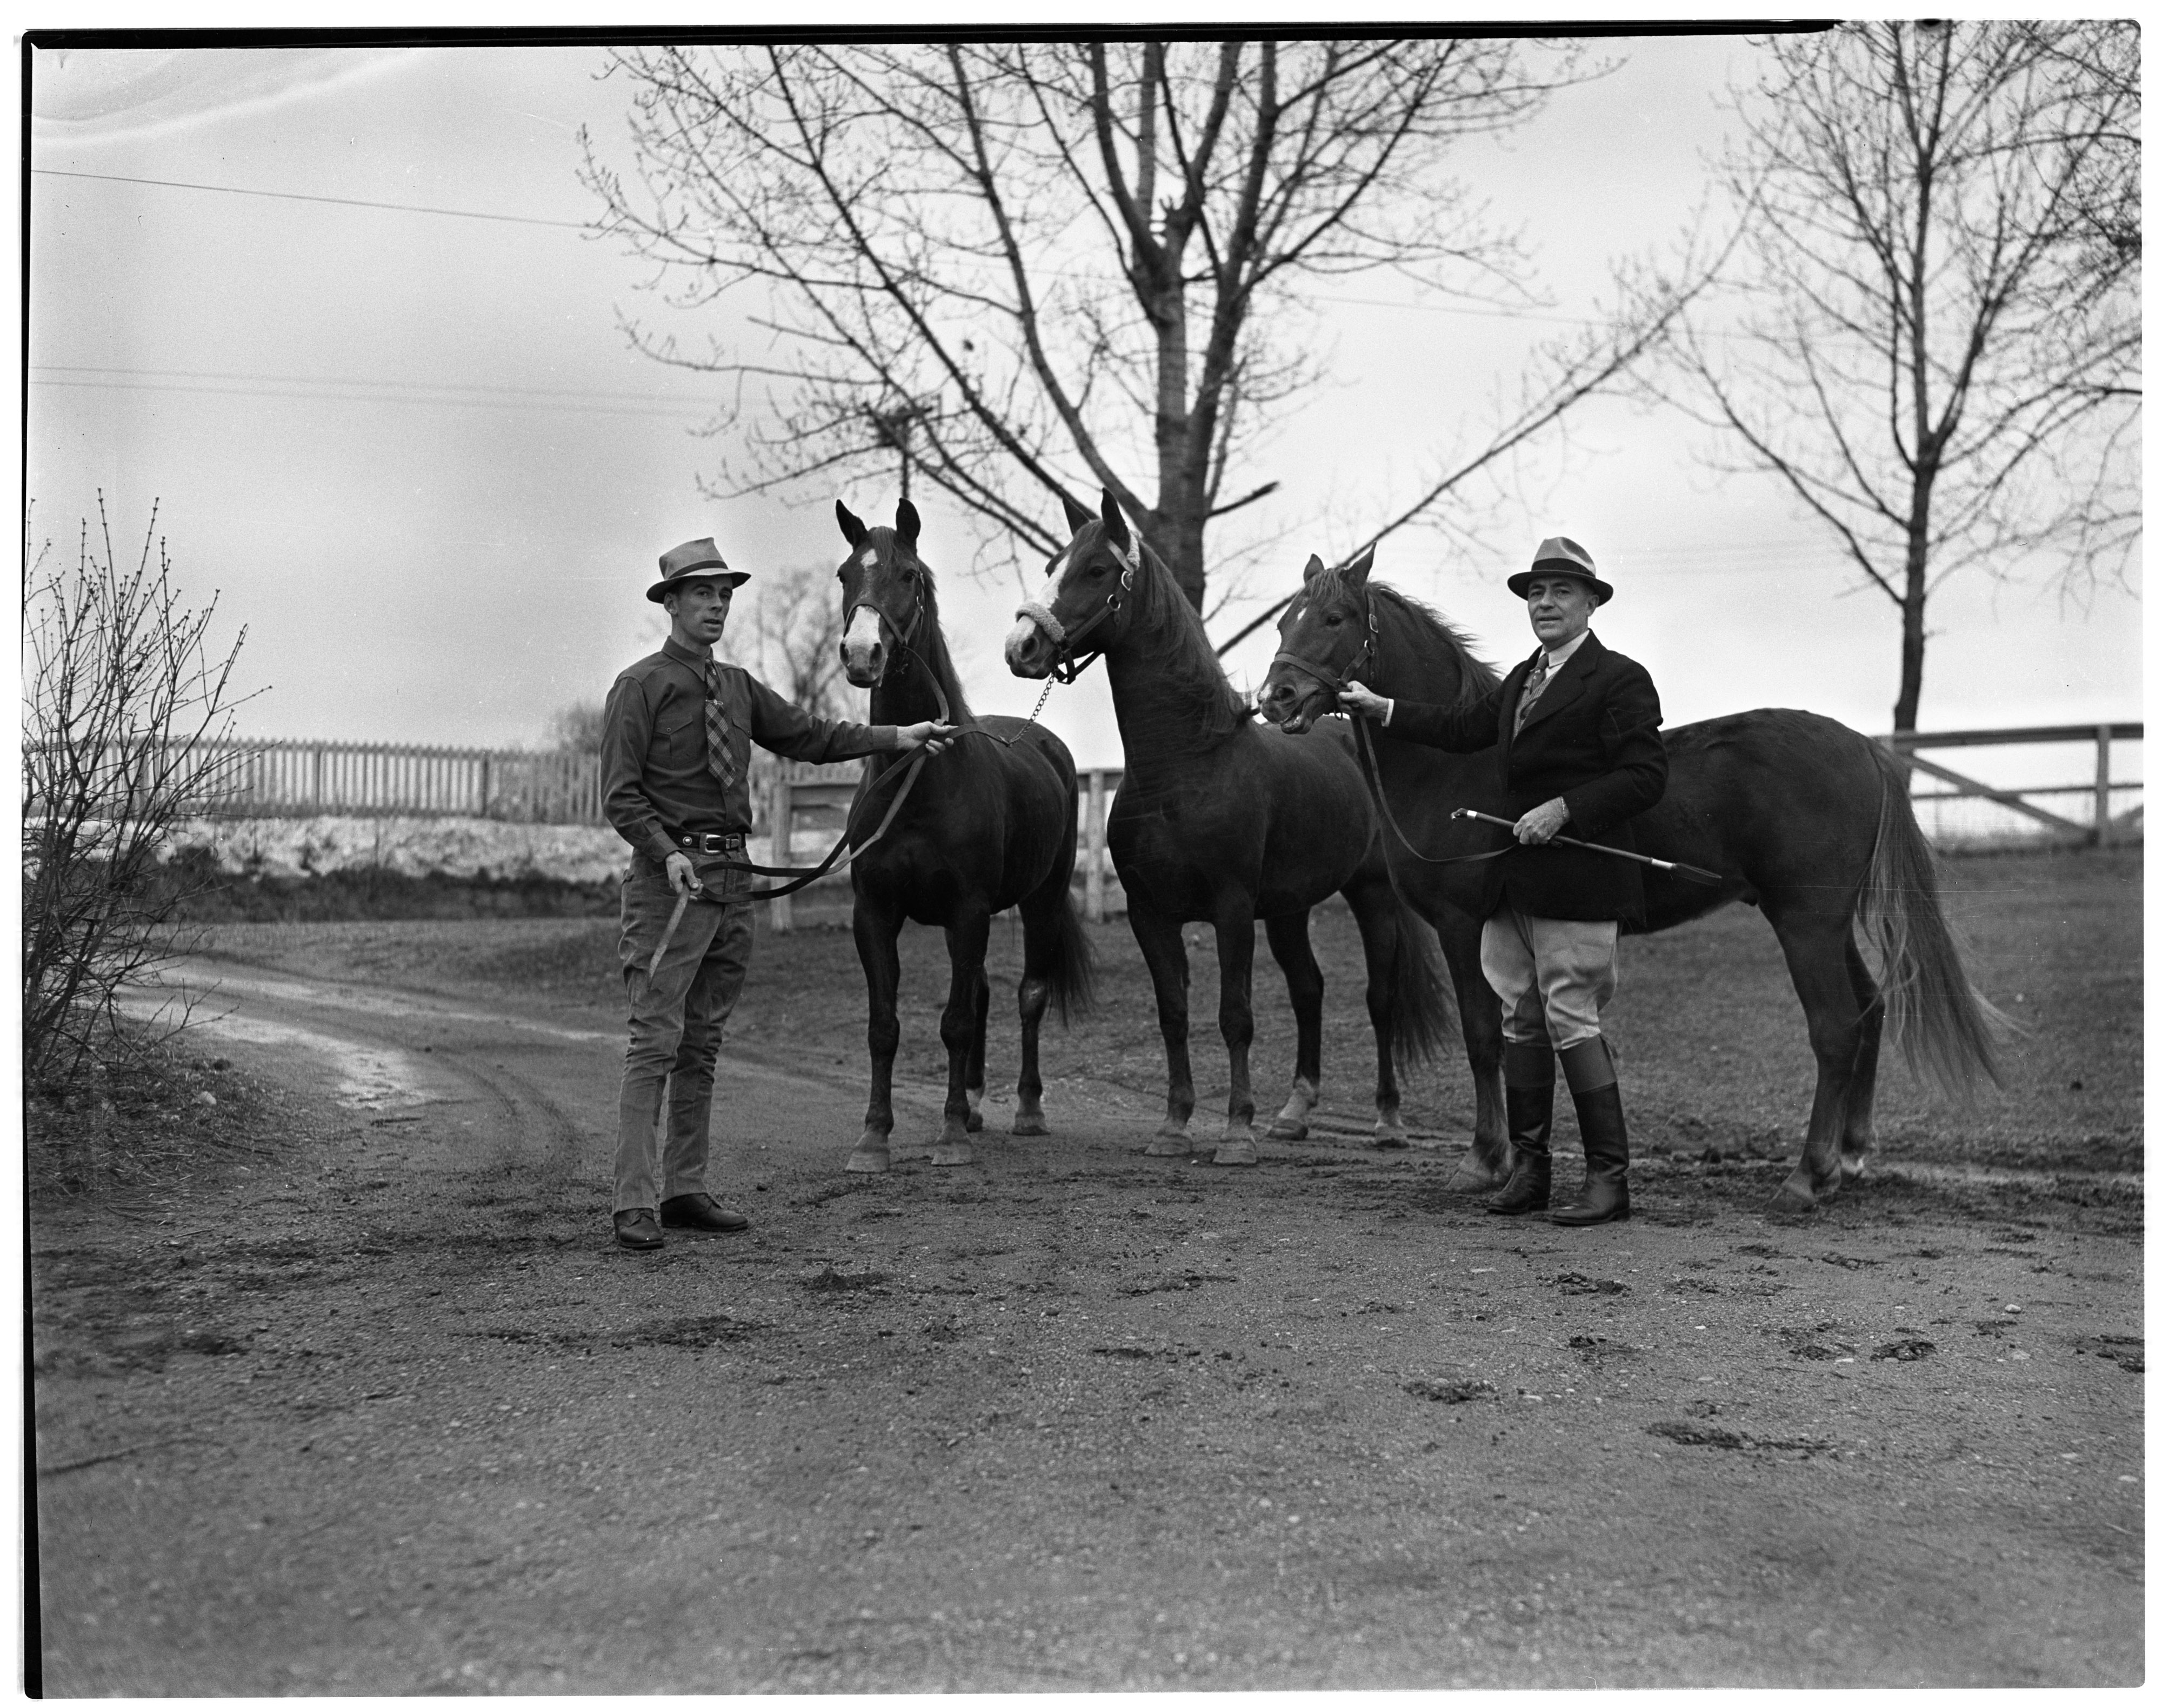 University of Michigan President Alexander G. Ruthven and Trainer Dolan with Morgan Horses, 1939 image